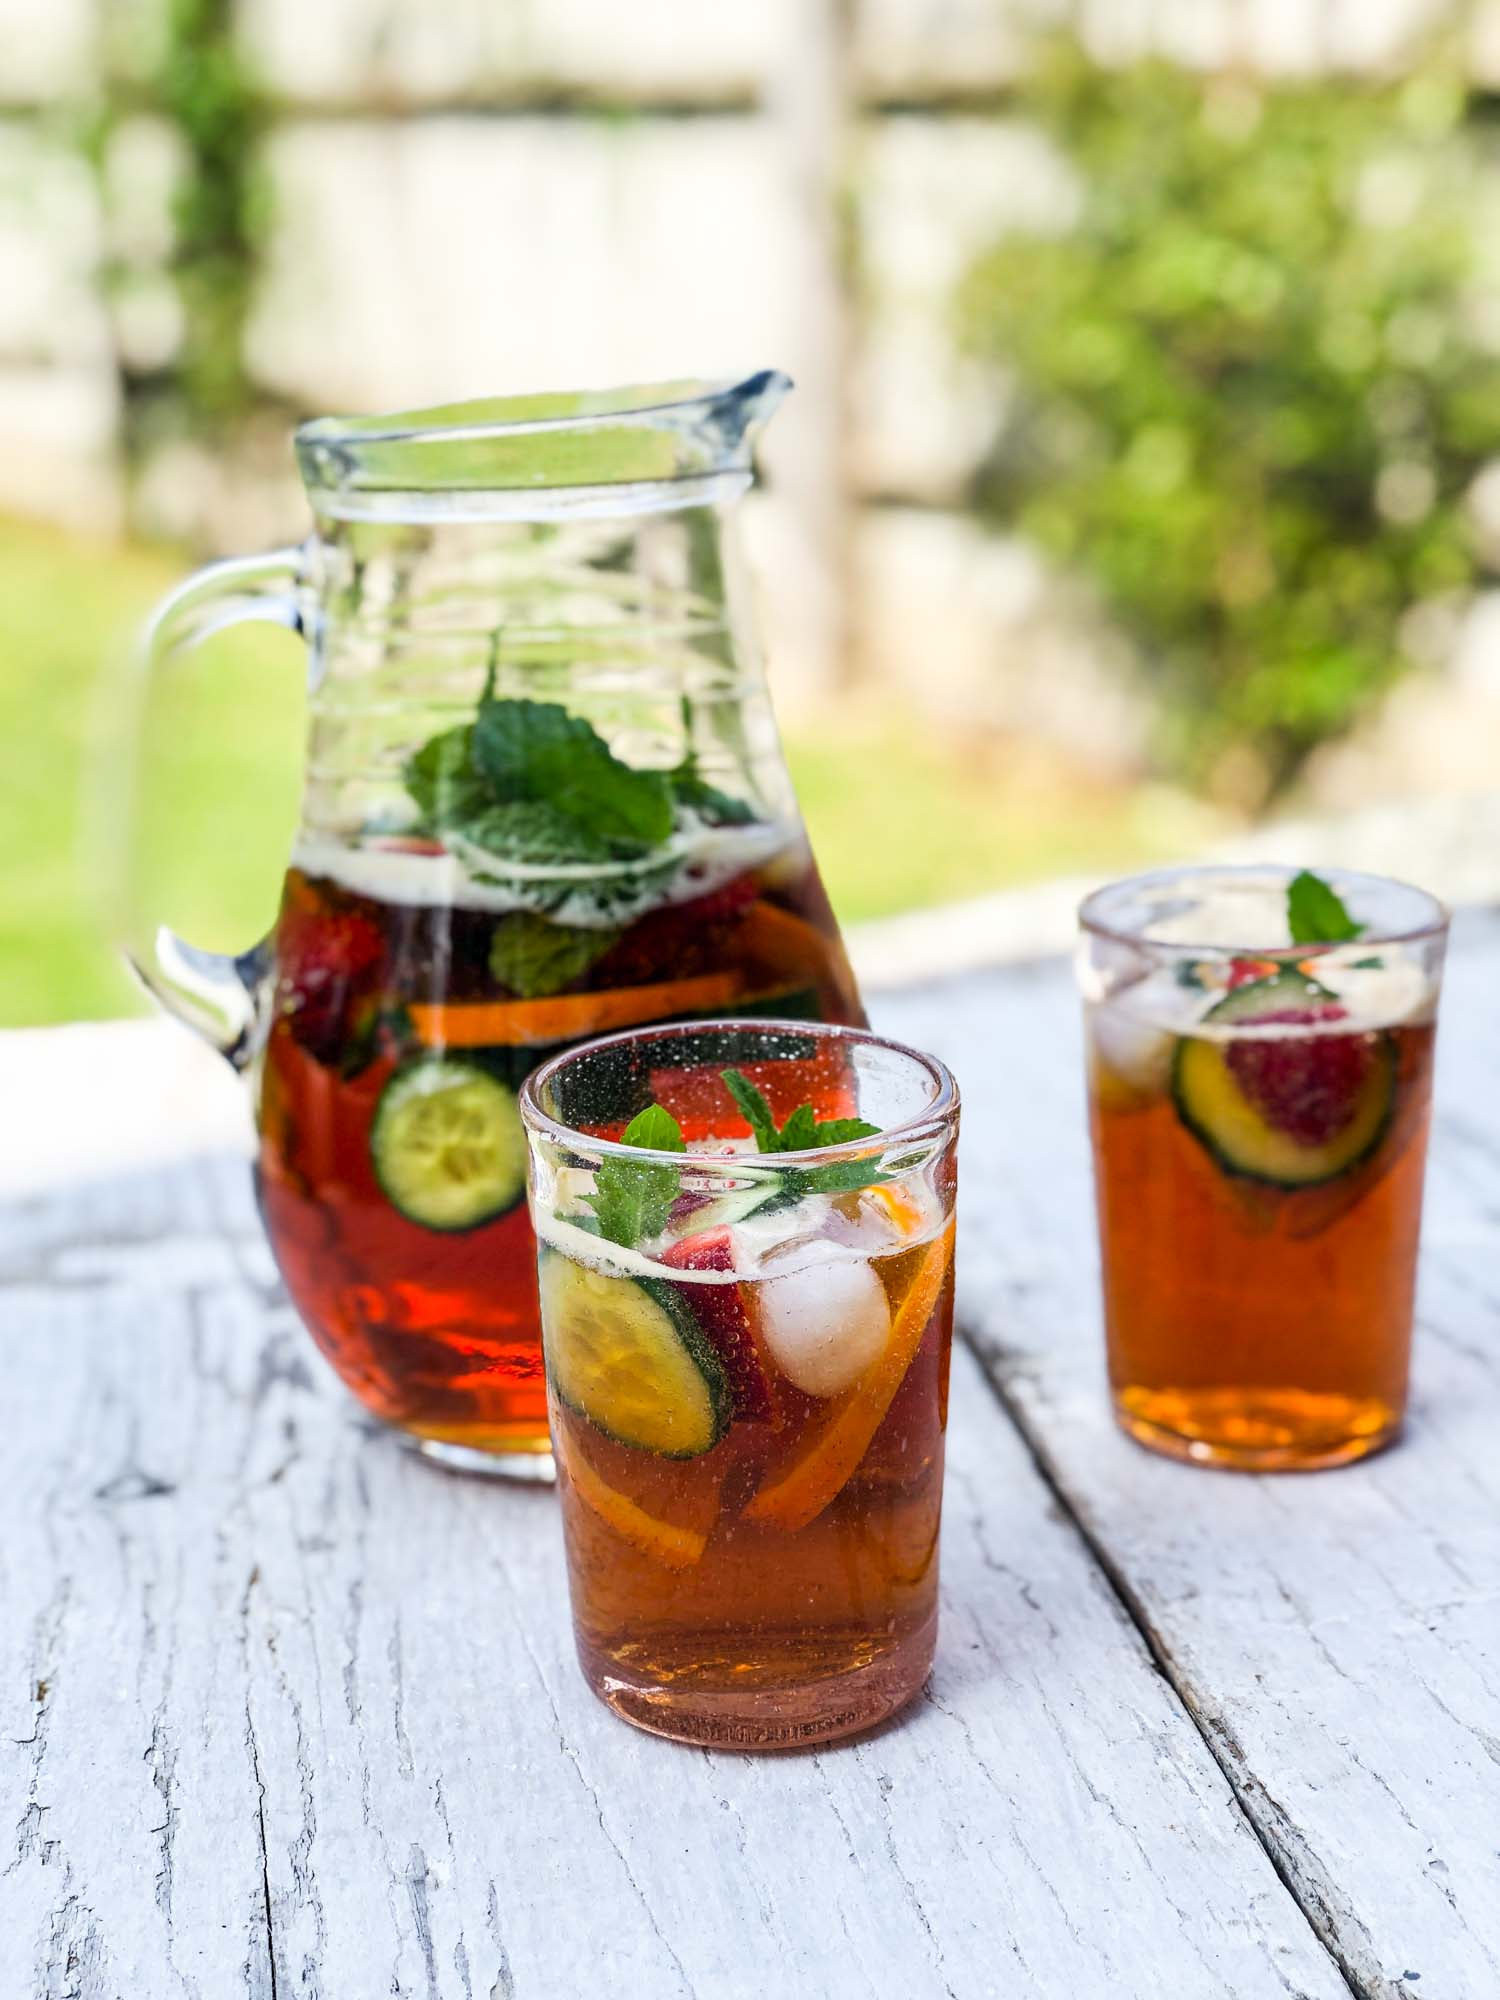 A pitcher of Pimm's with two glasses on a table.